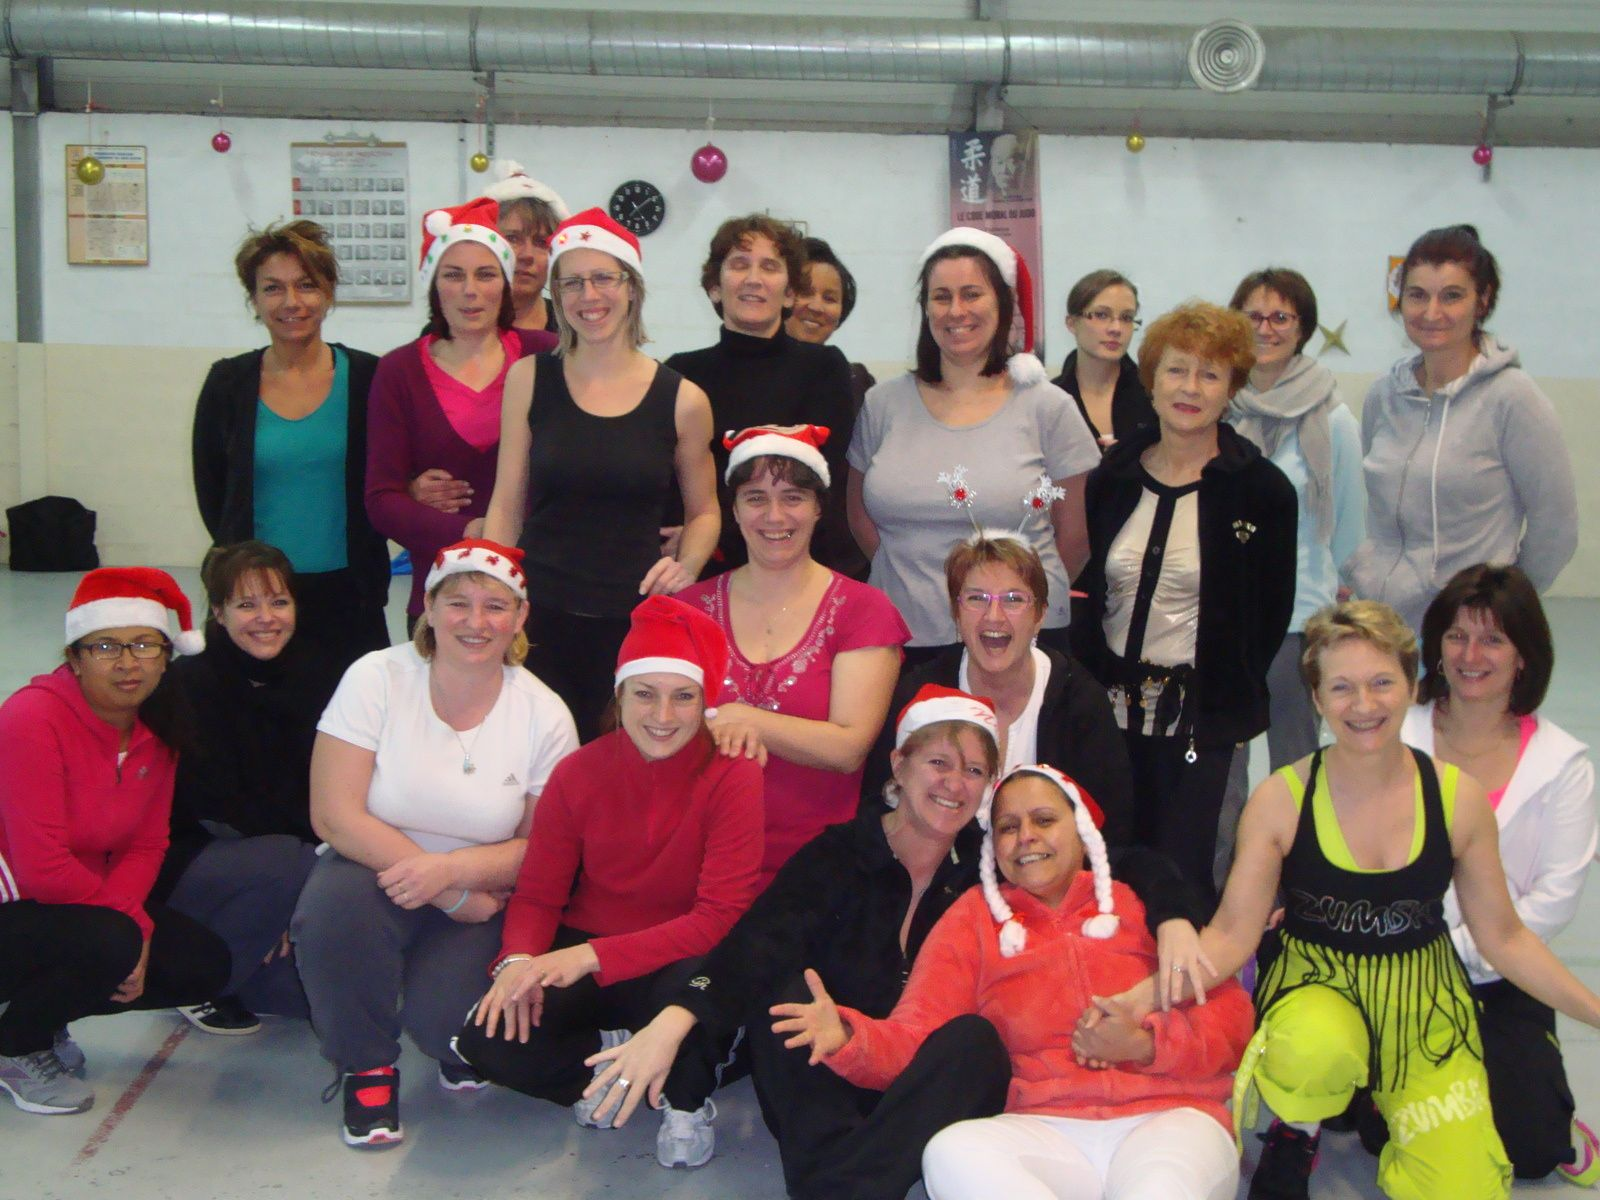 Zumba de noel suite association de gymnastique - Dress code rennes ...